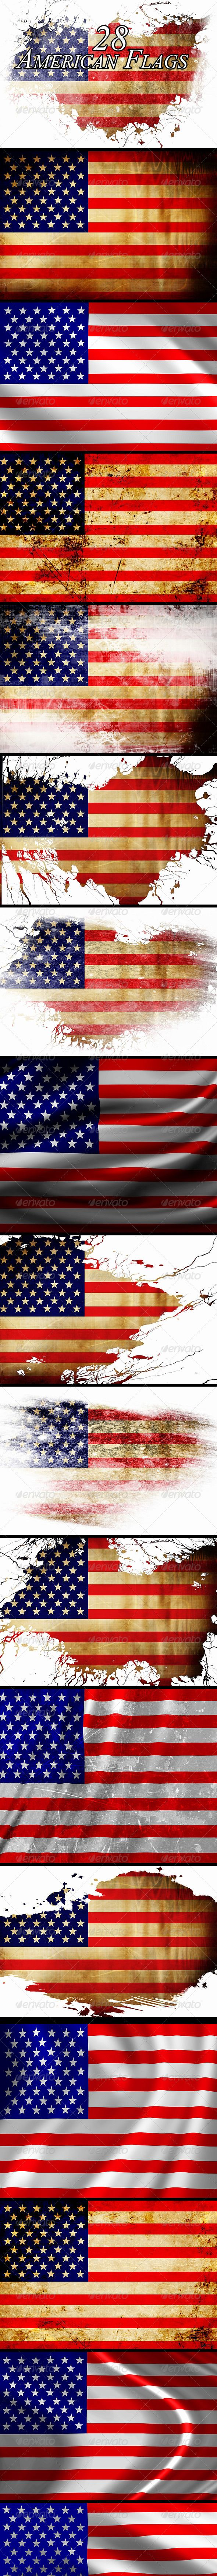 28 American Flag Backgrounds (Different Styles) - Backgrounds Graphics